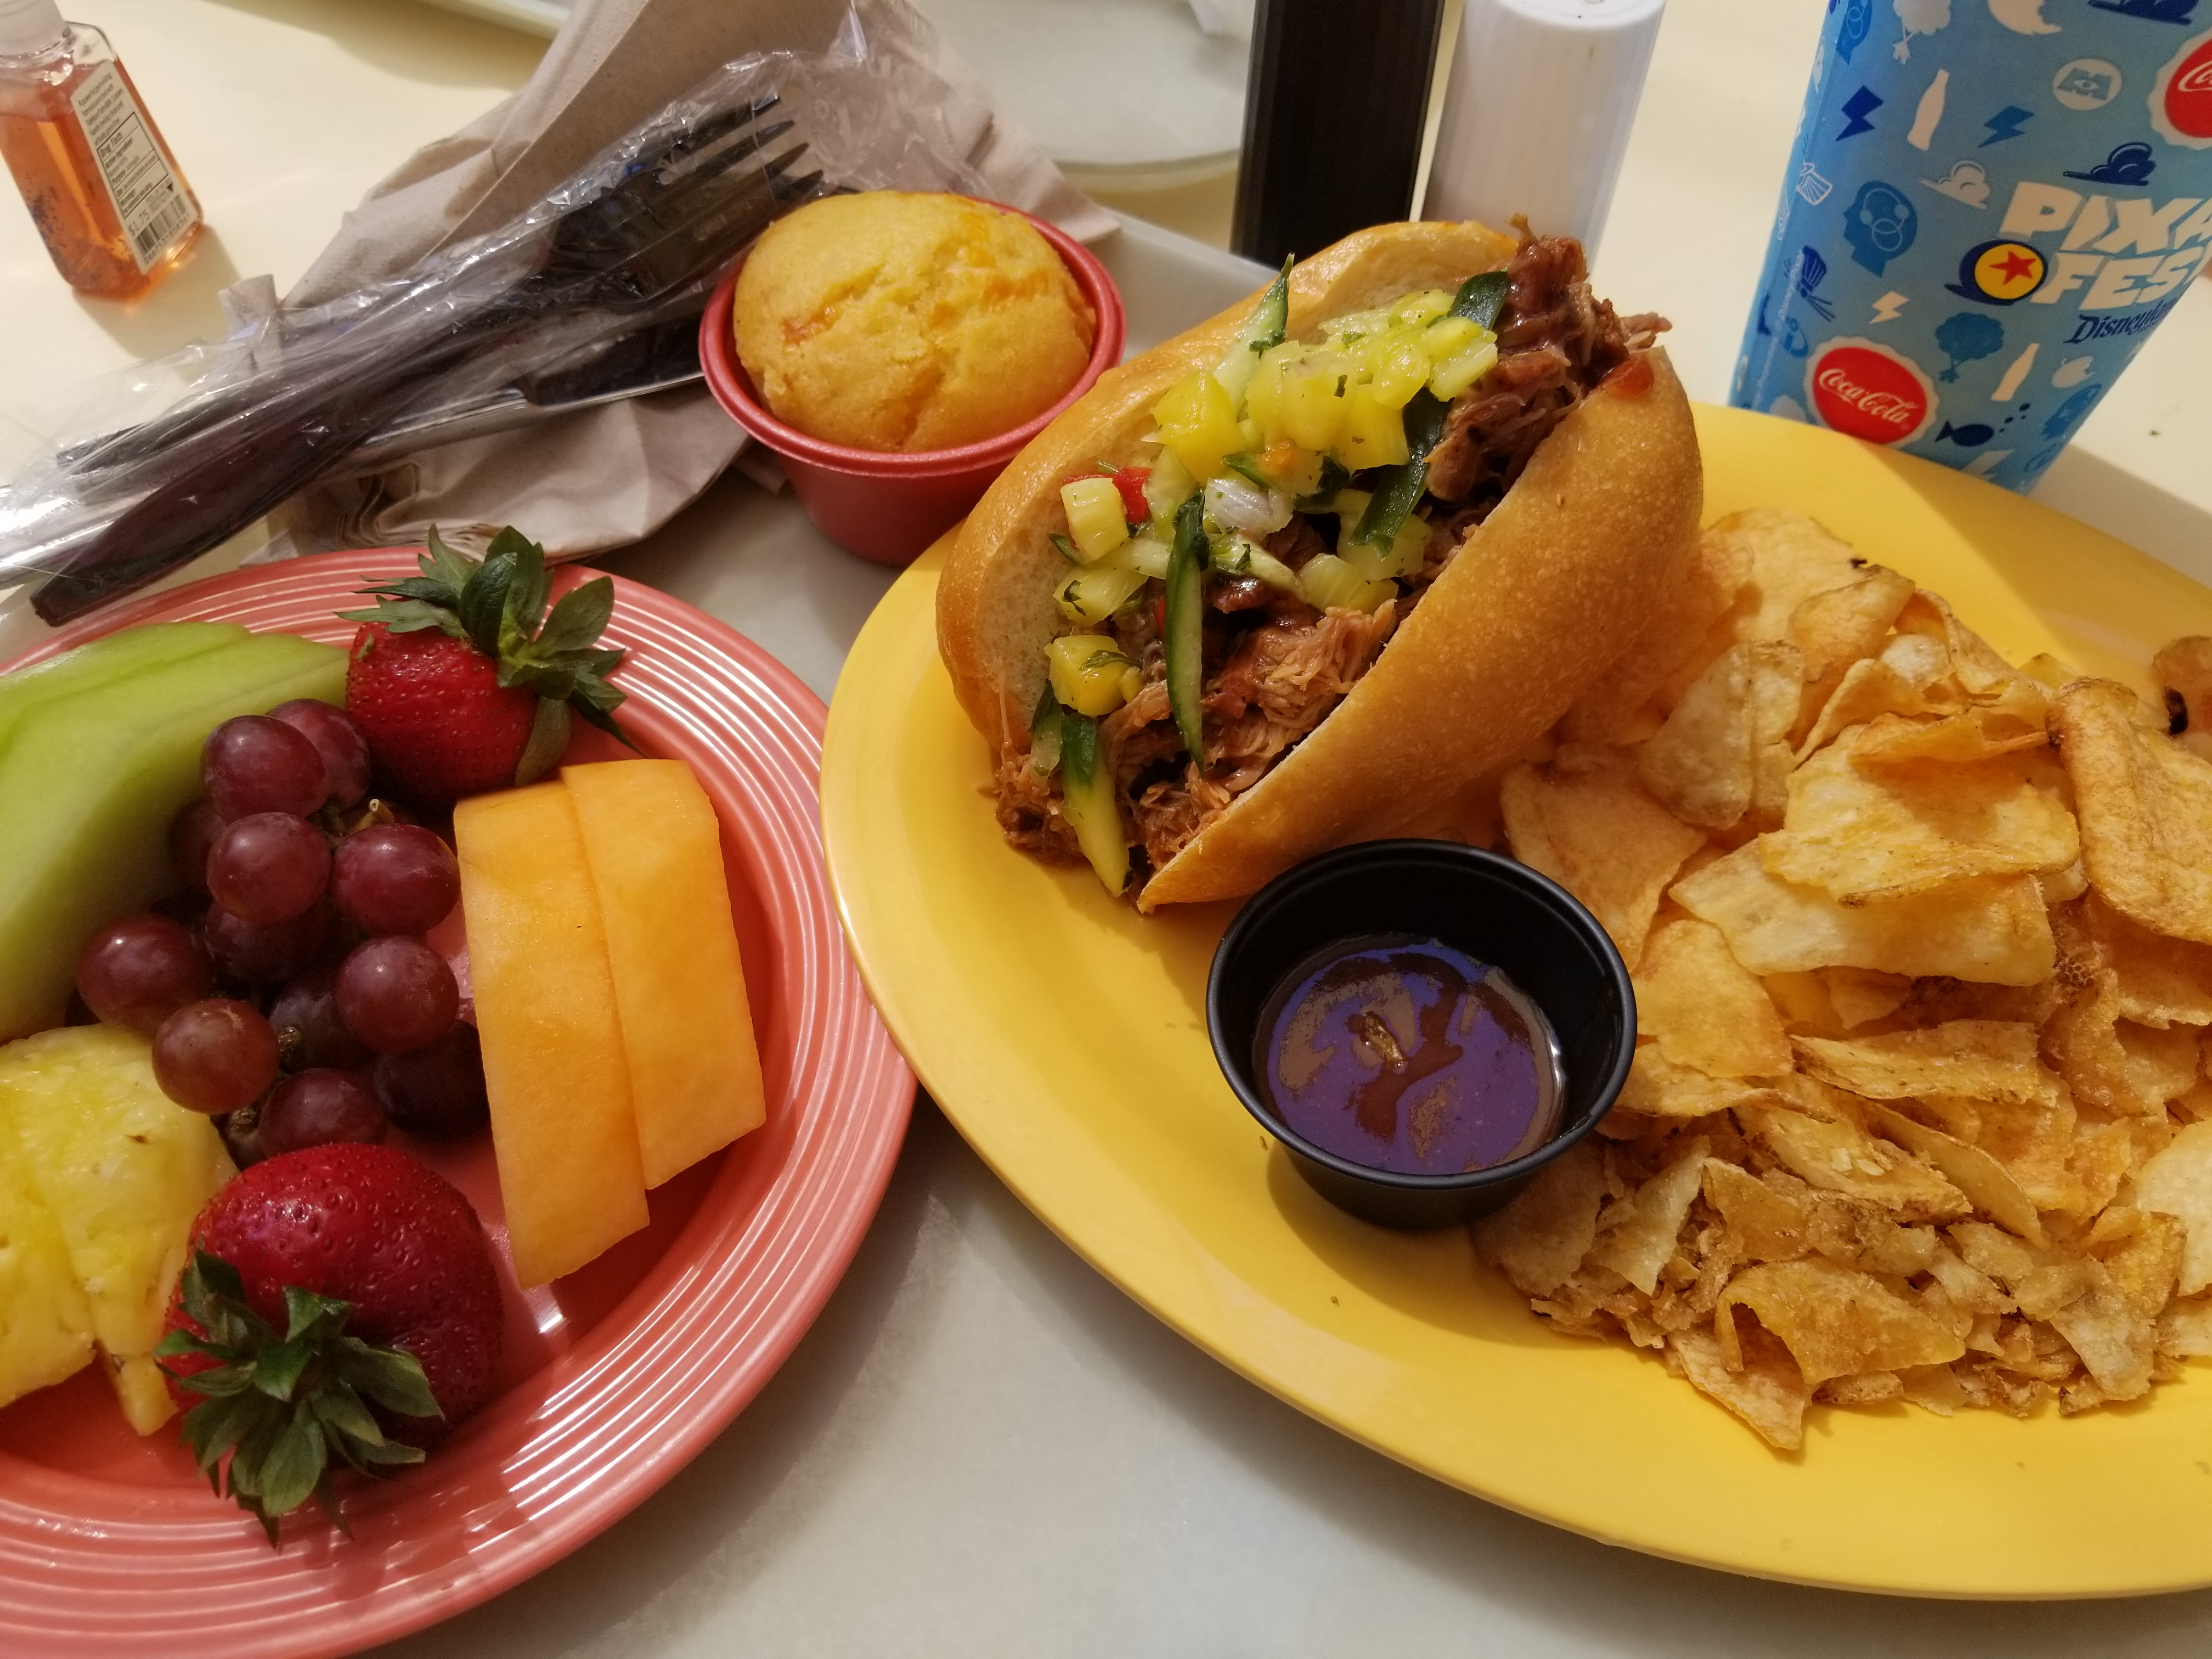 Pulled Pork Sandwich with Fruit Plate